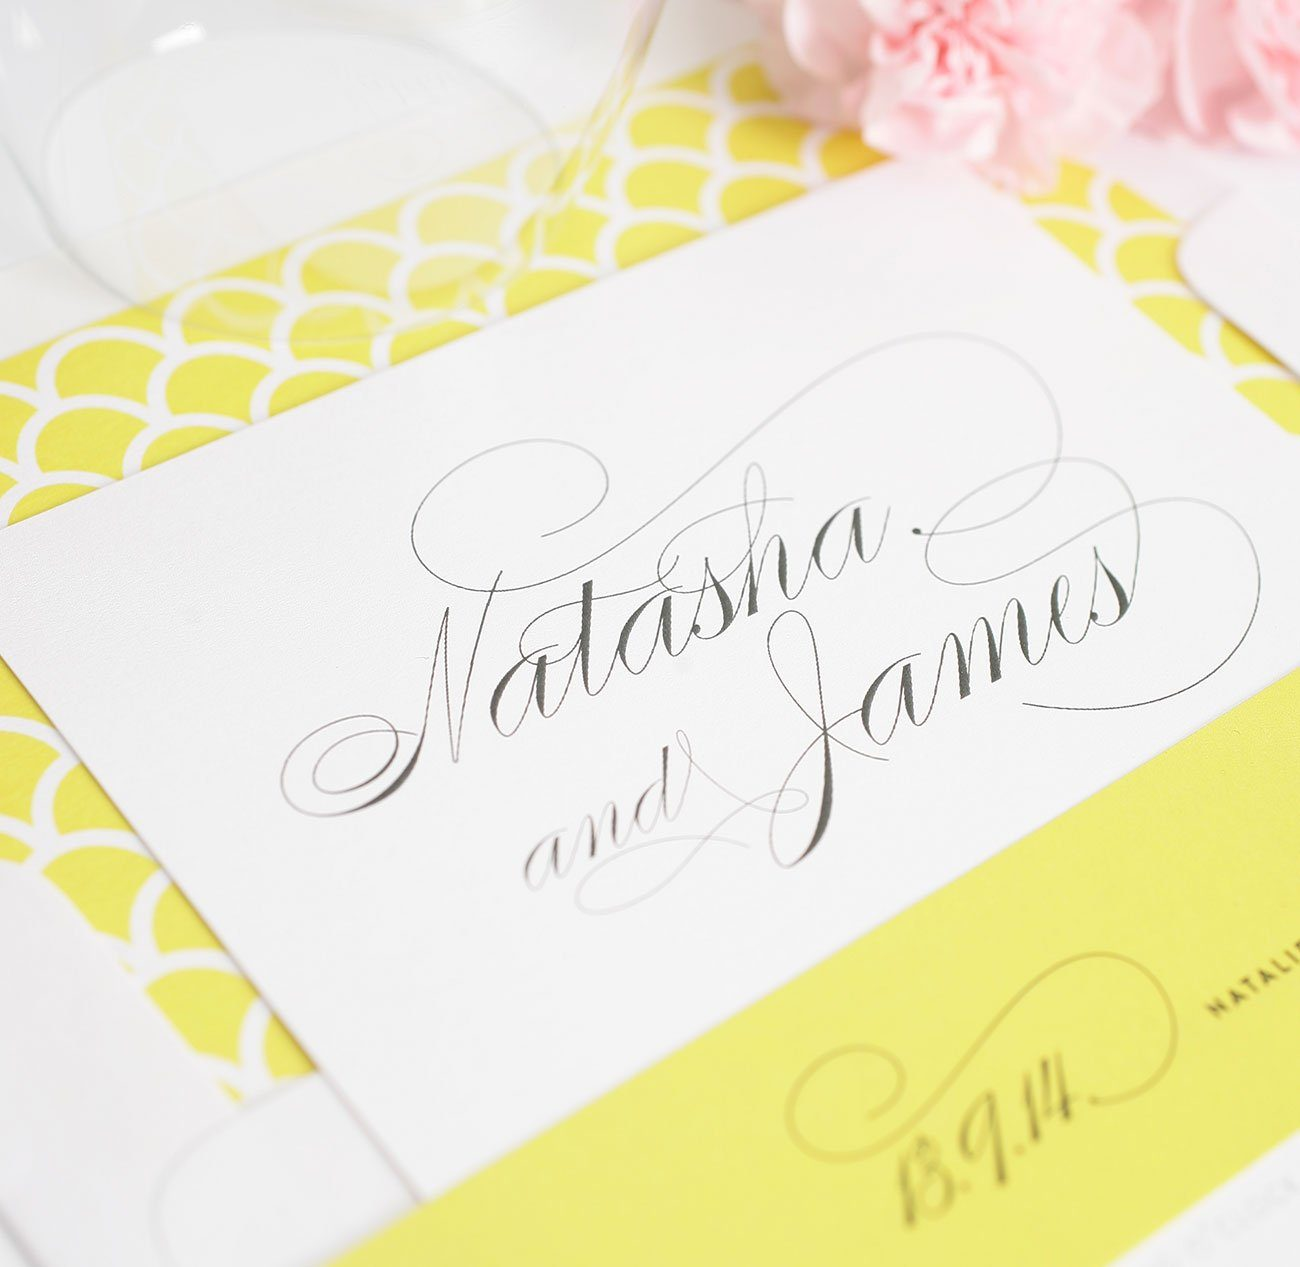 yellow wedding invitations with gorgeous calligraphy font, Wedding invitations